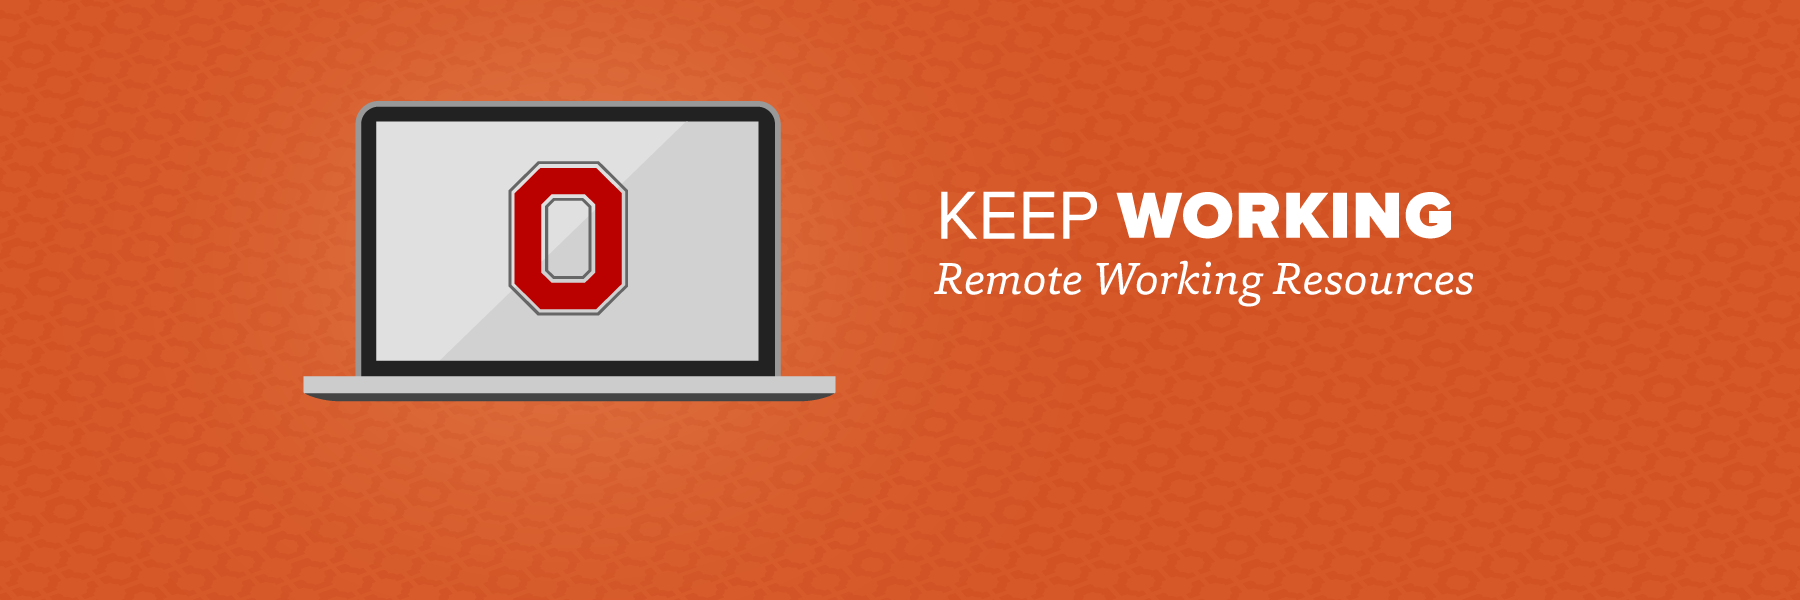 Keep Working: Remote Working Resources